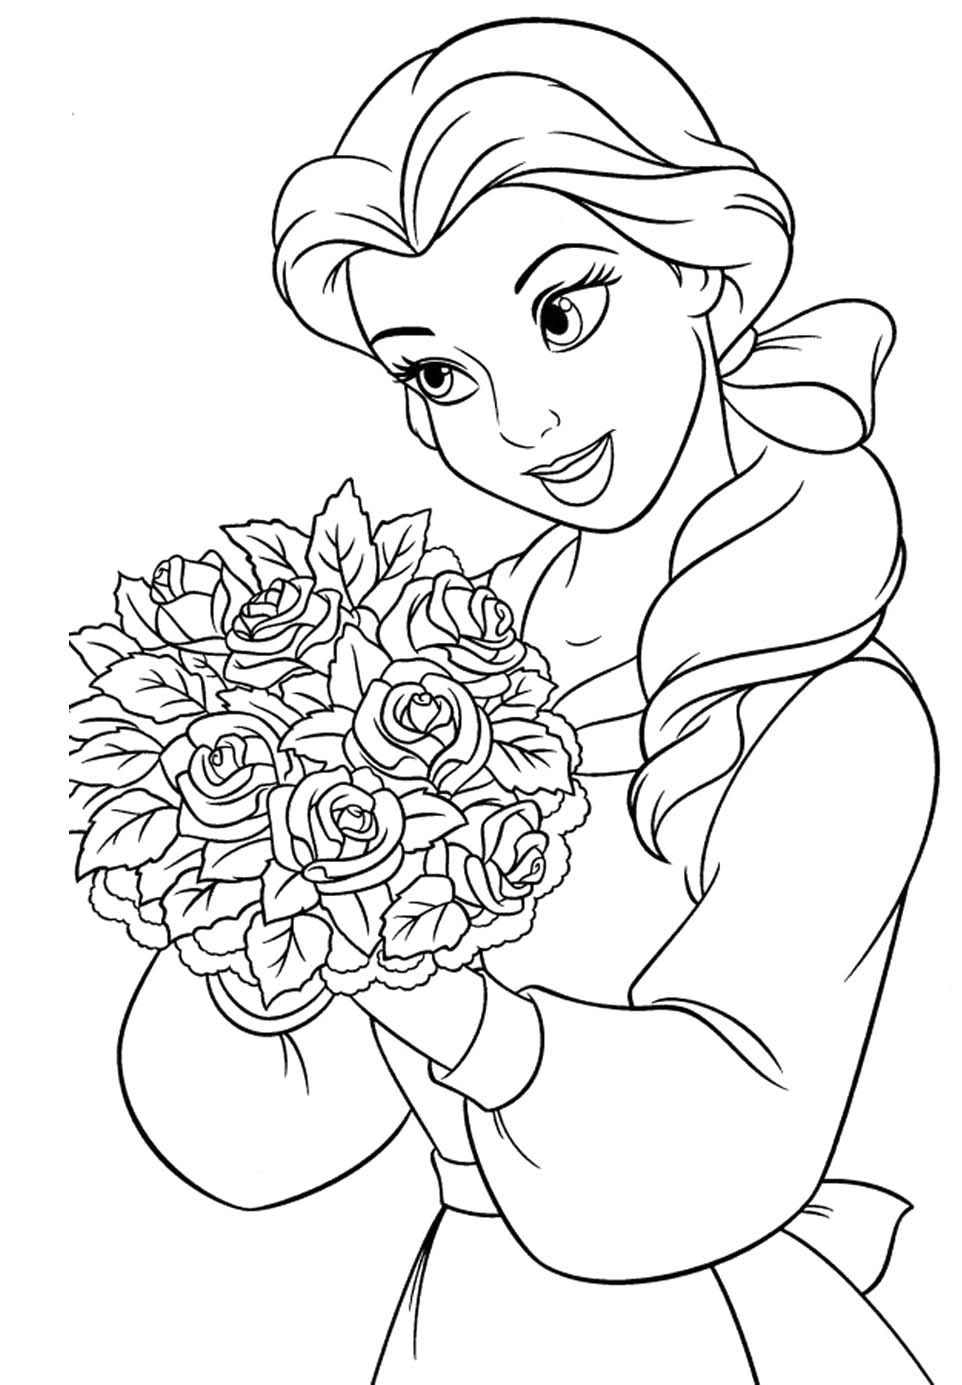 Princess Belle Carry Flowers Coloring Pages | Princess/Glitter ...